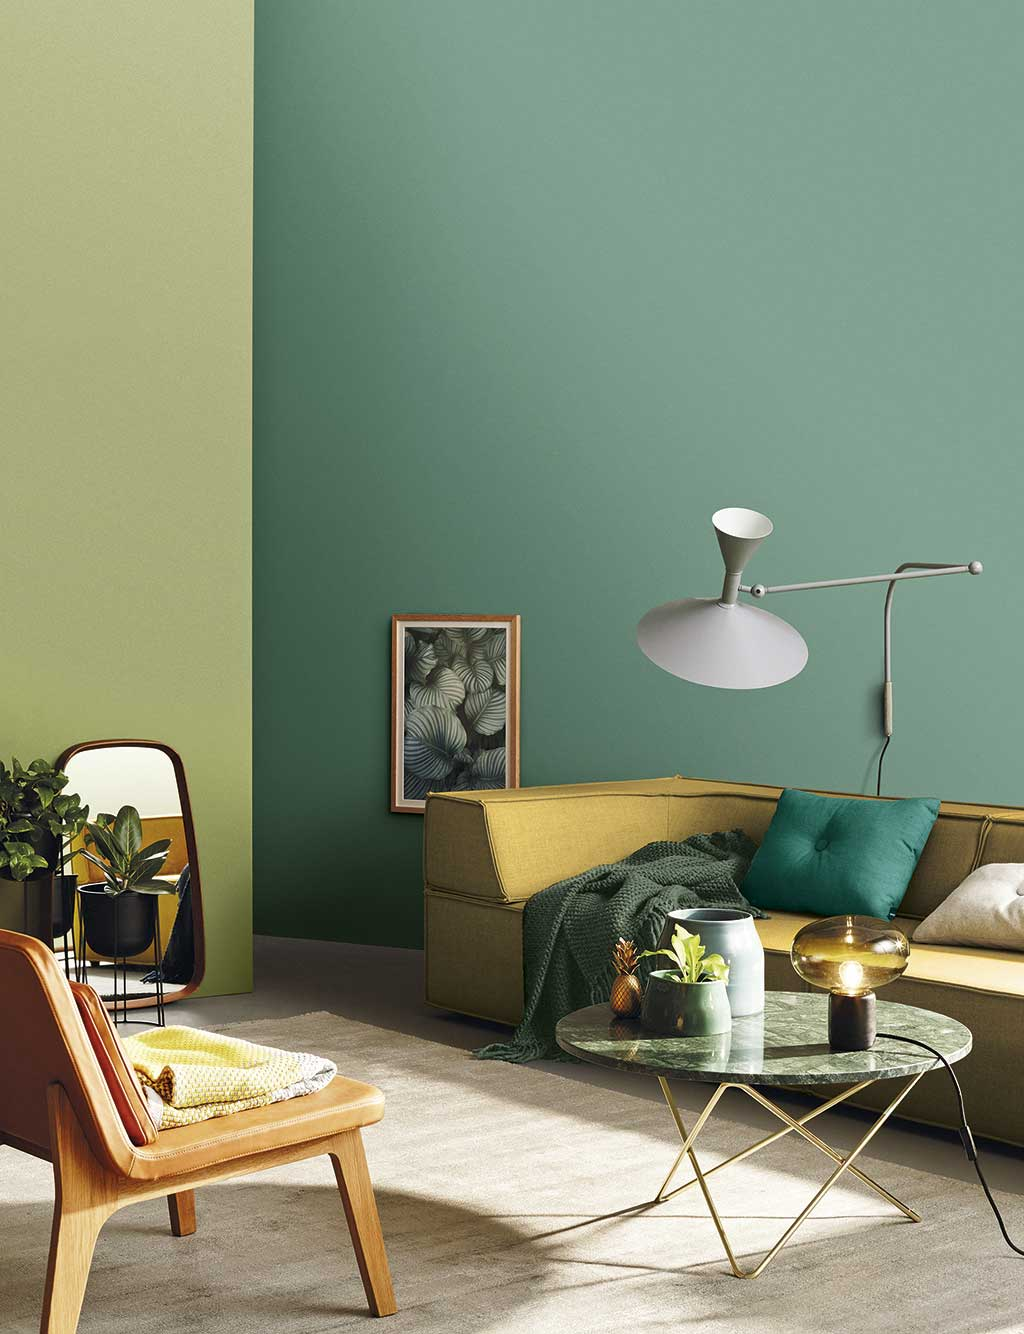 Colores para decorar 2018. Verdes.